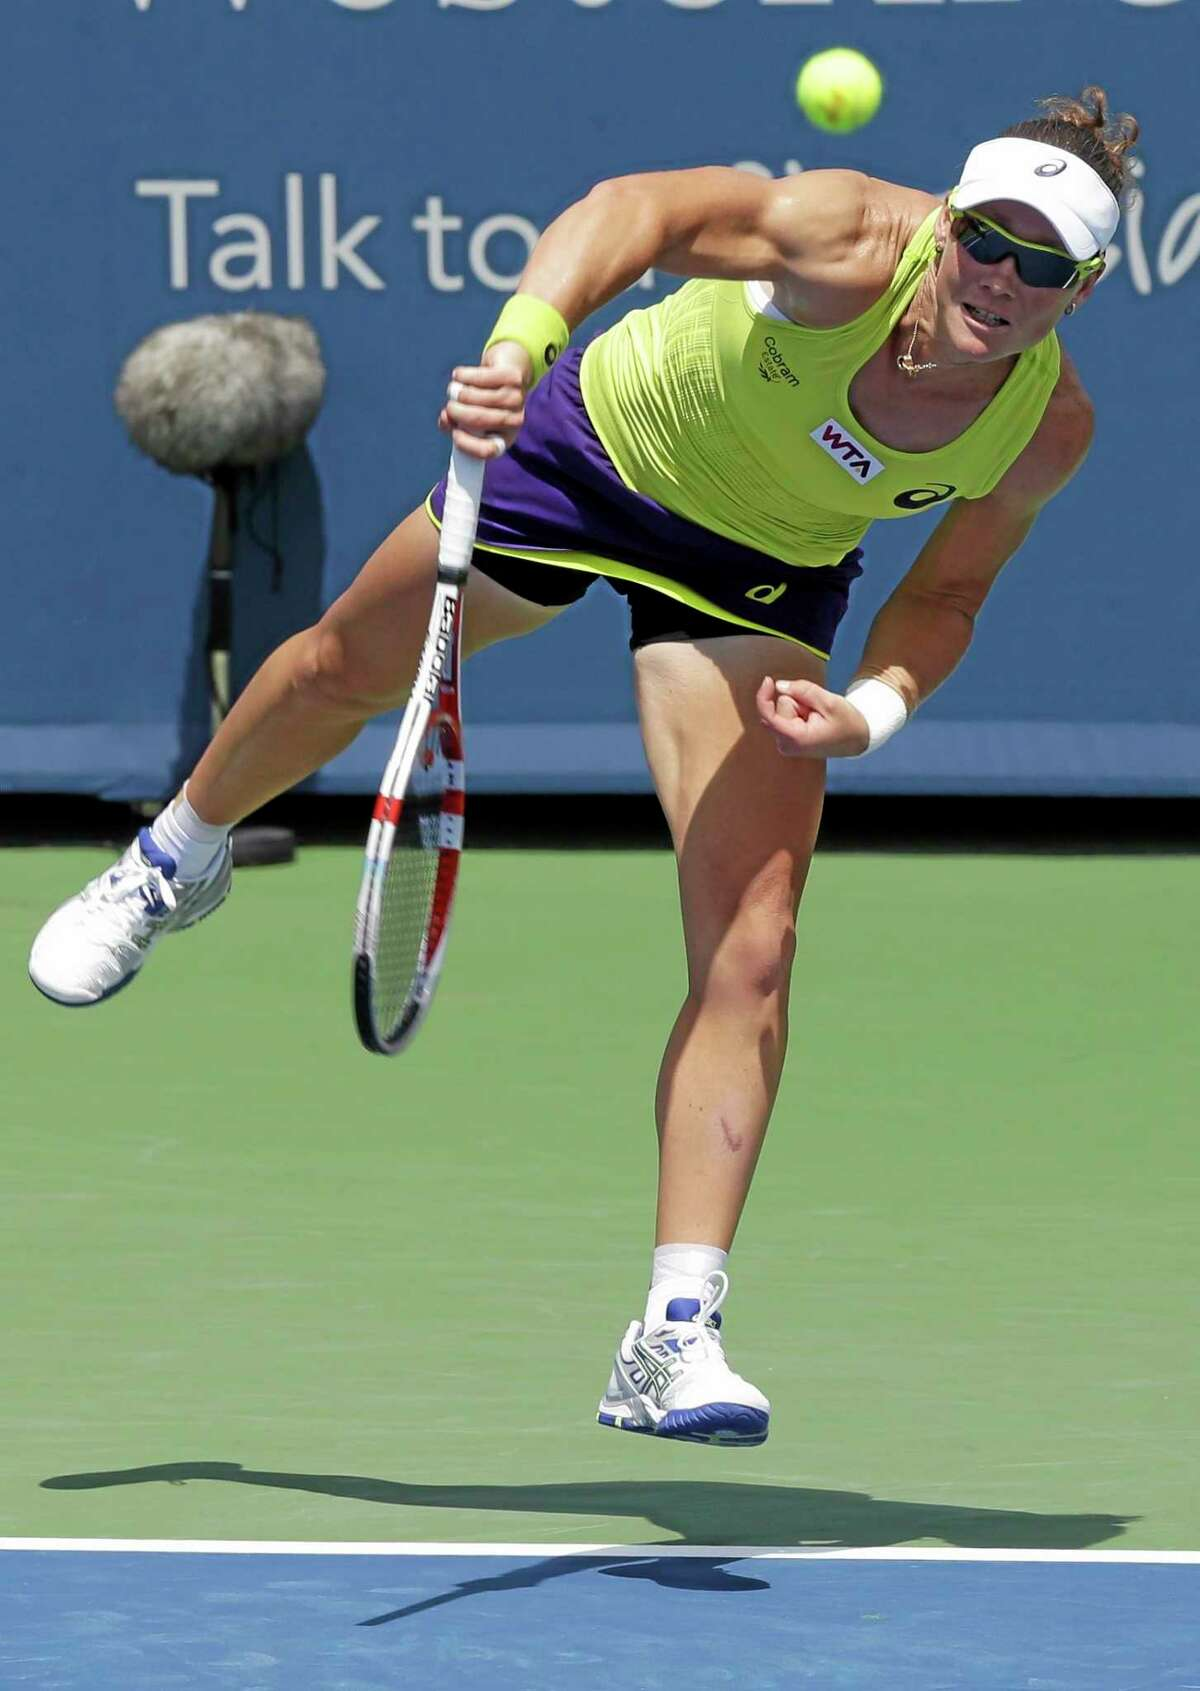 Sam Stosur has been awarded a wild card into the Conecticut Open, which begins with qualifying play Friday at the Connecticut Tennis Center.